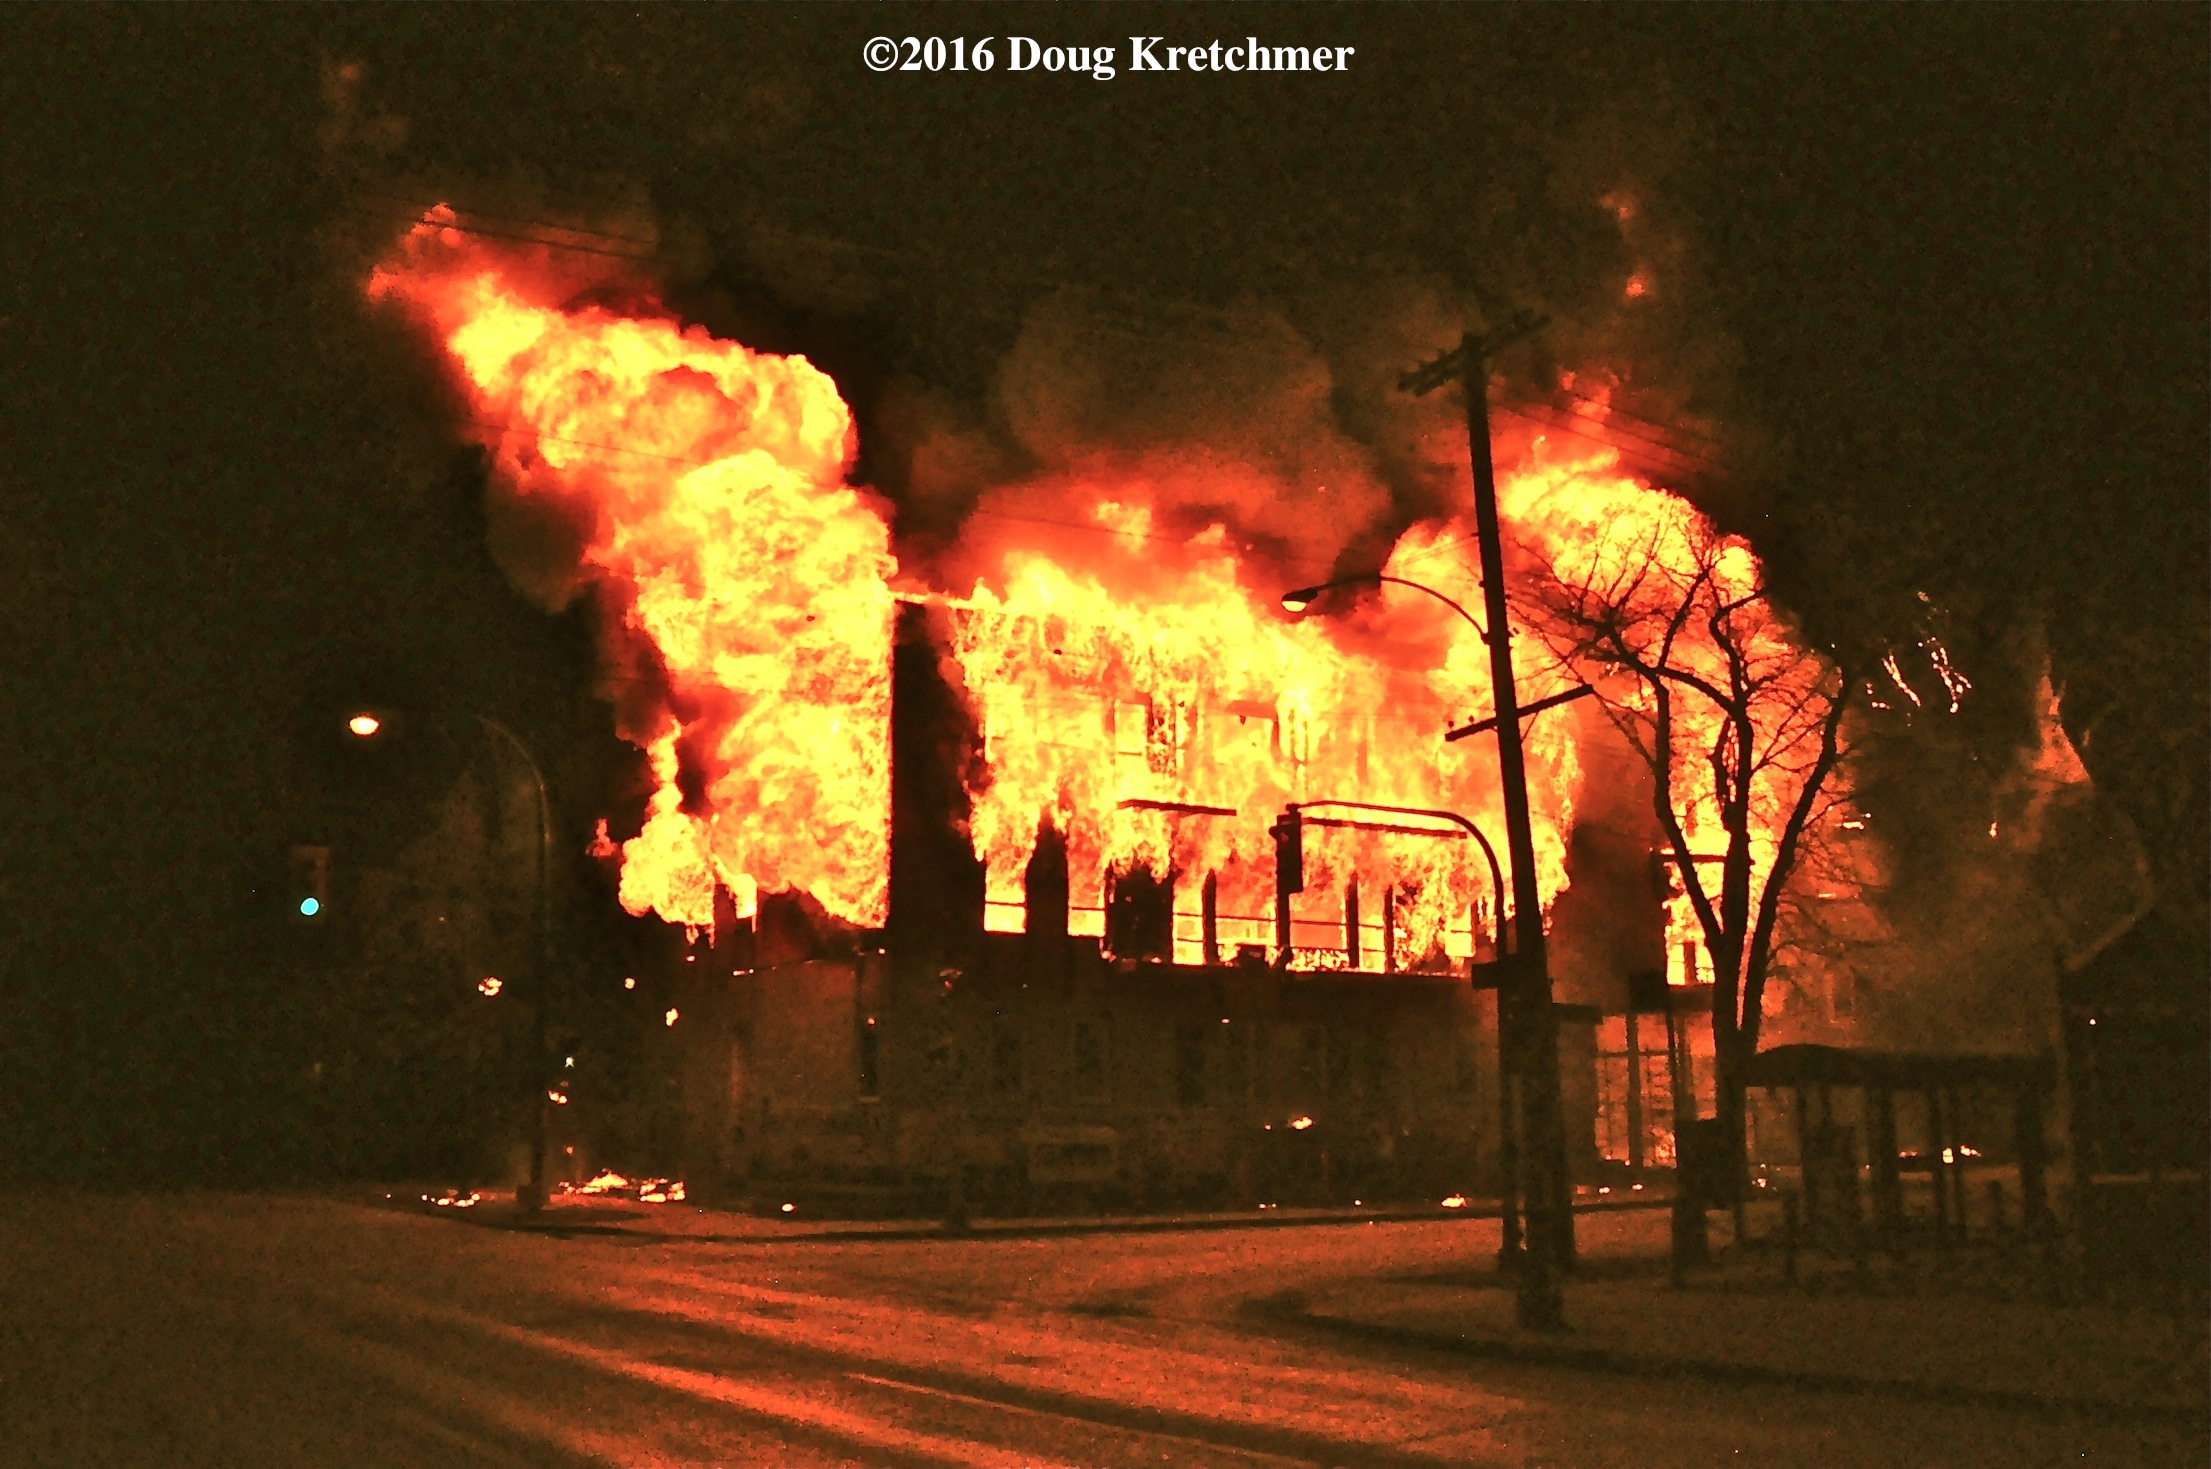 Arson is suspected in this fire in Wolseley early Saturday morning. /DOUG KRETCHMER